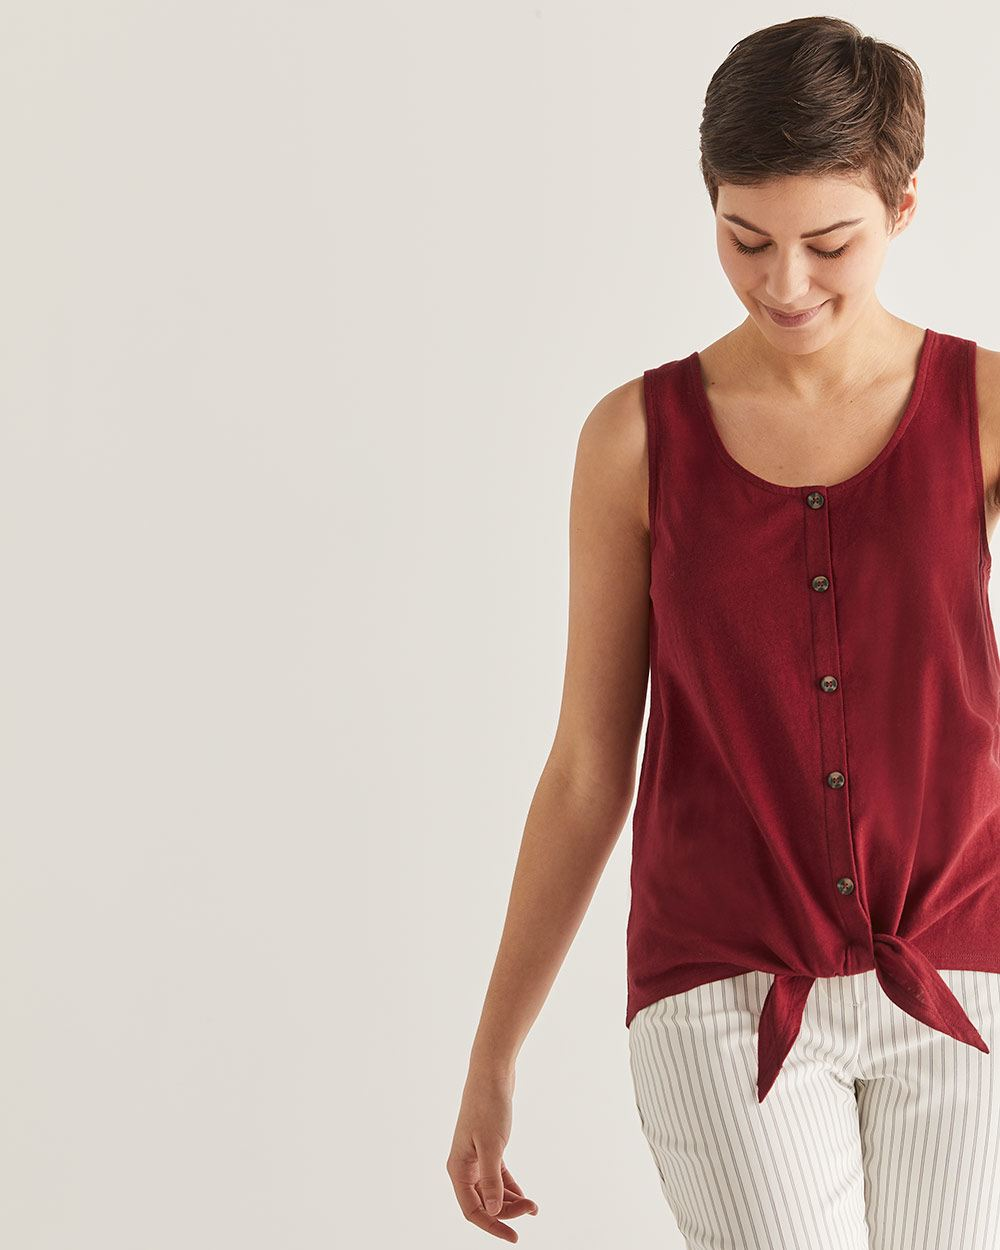 Cotton & Linen-Blend Tank Top with Buttons - Petite